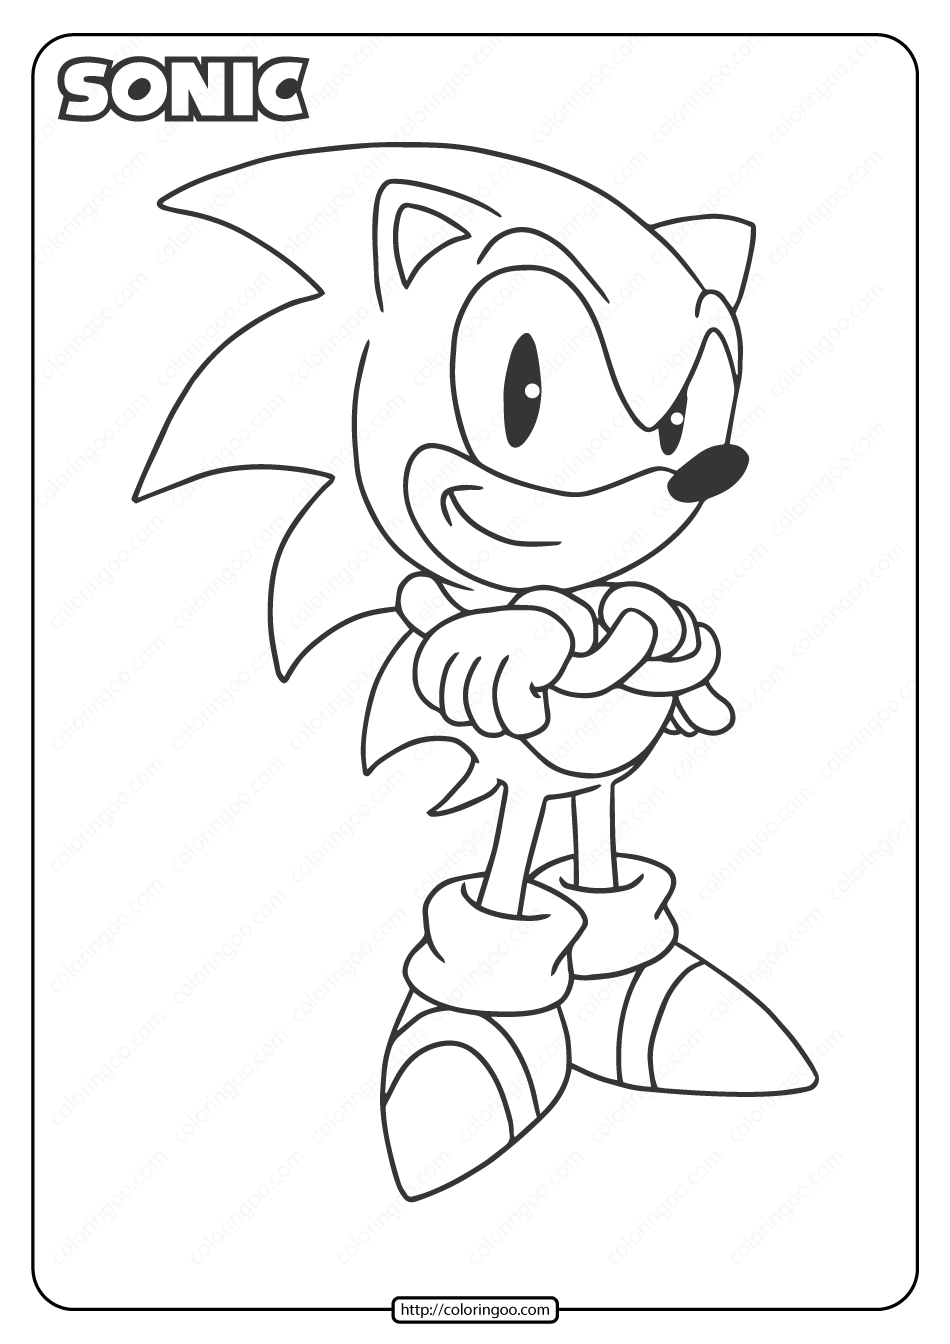 Printable Sonic the Hedgehog Pdf Coloring Page